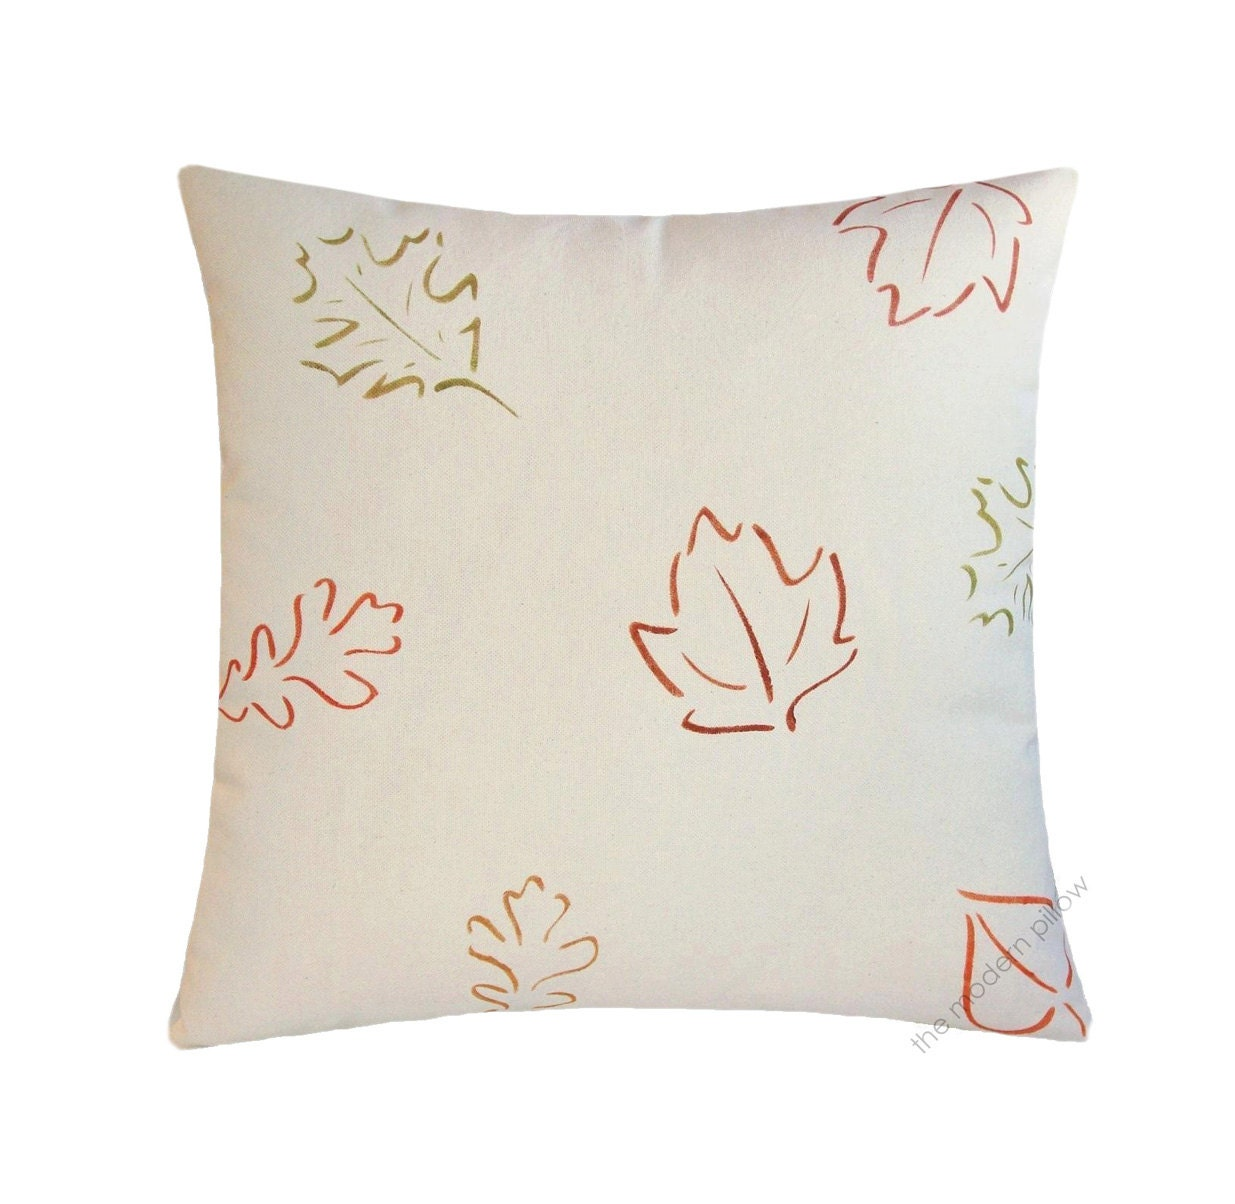 Falling Fall Leaves Decorative Throw Pillow Cover / Pillow